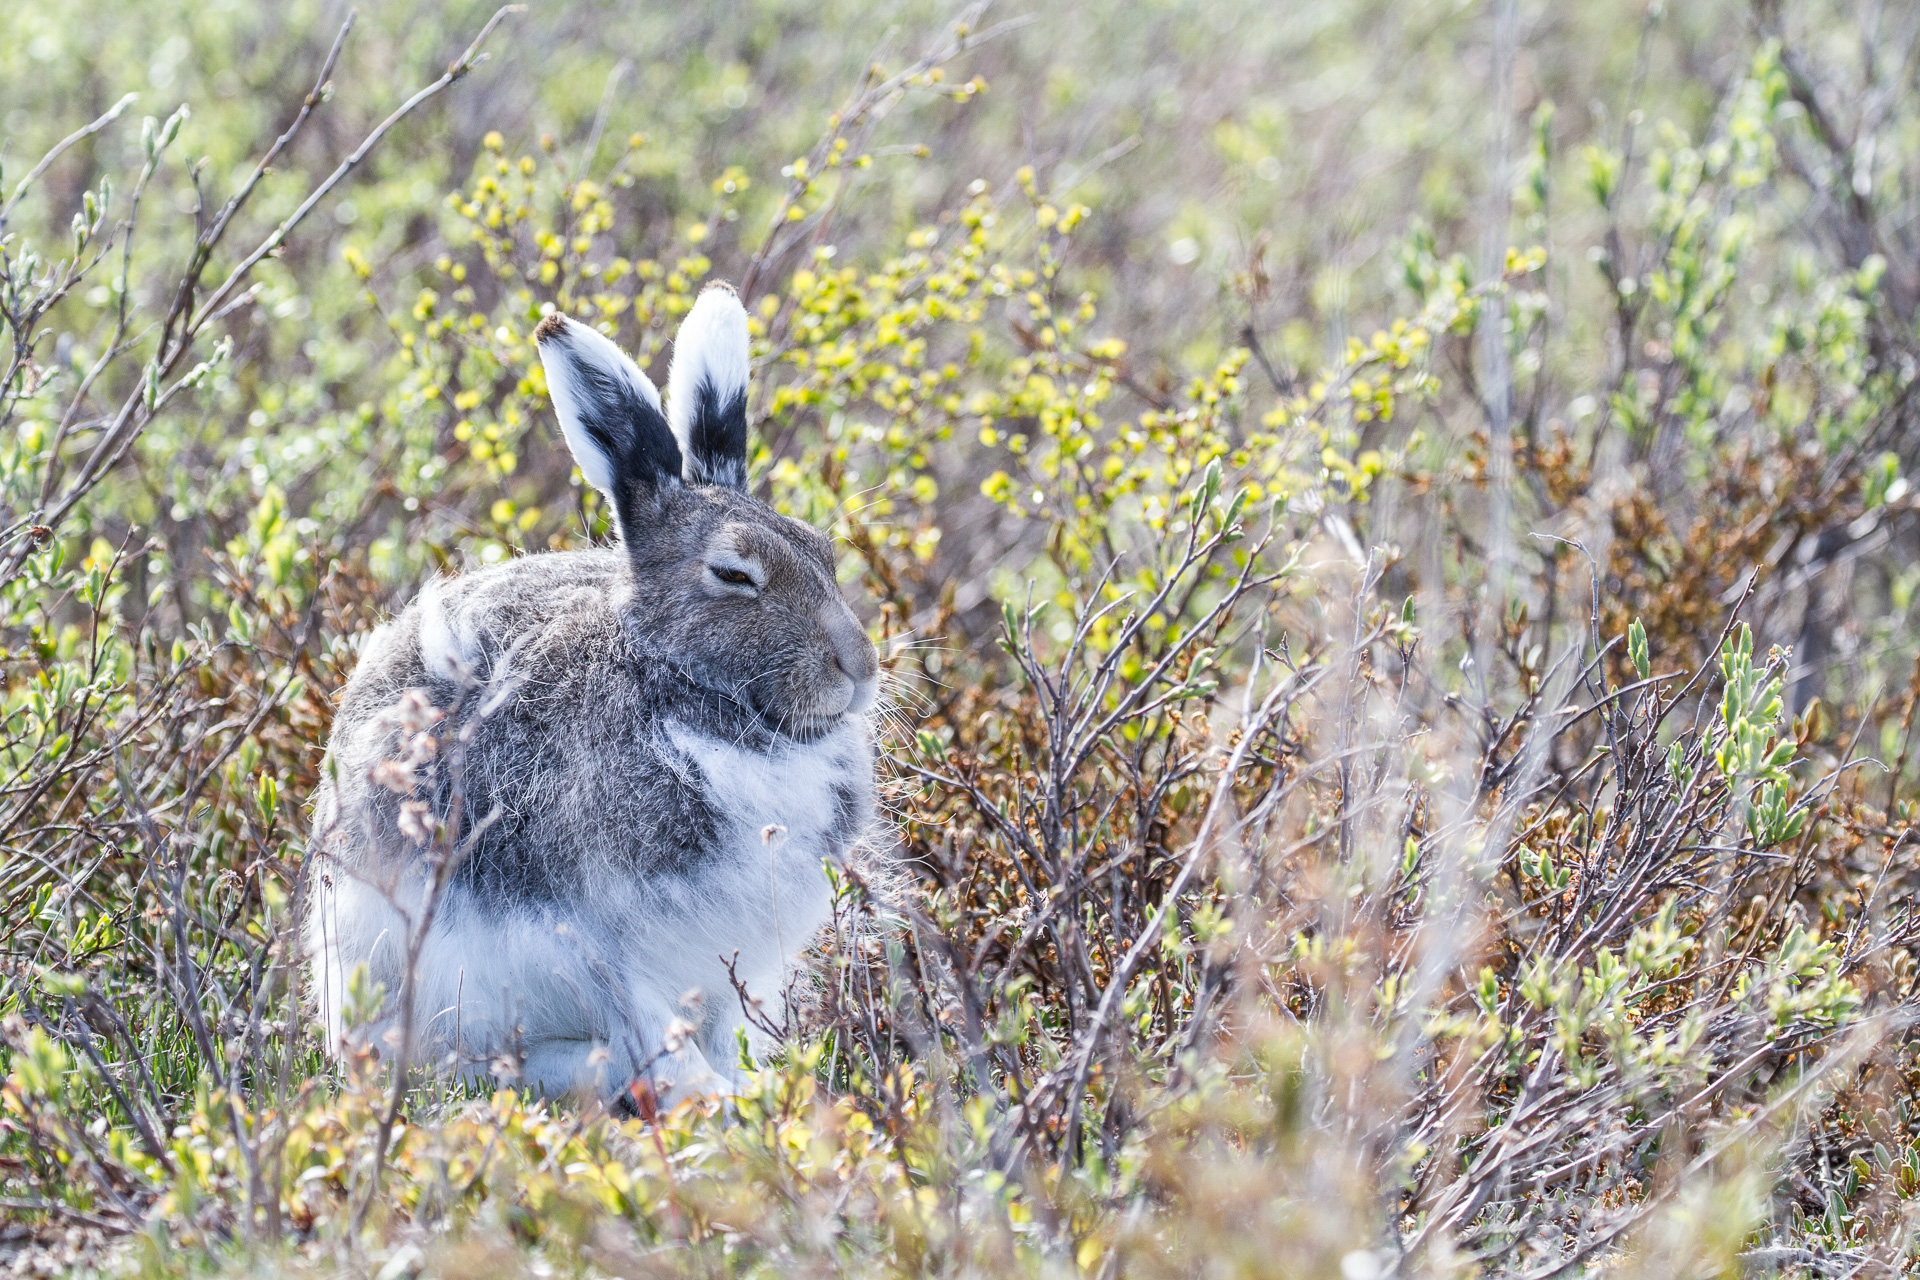 Arctic Hare molting Lepus arcticus Churchill Northern Studies Center Churchill Manitoba Canada-11